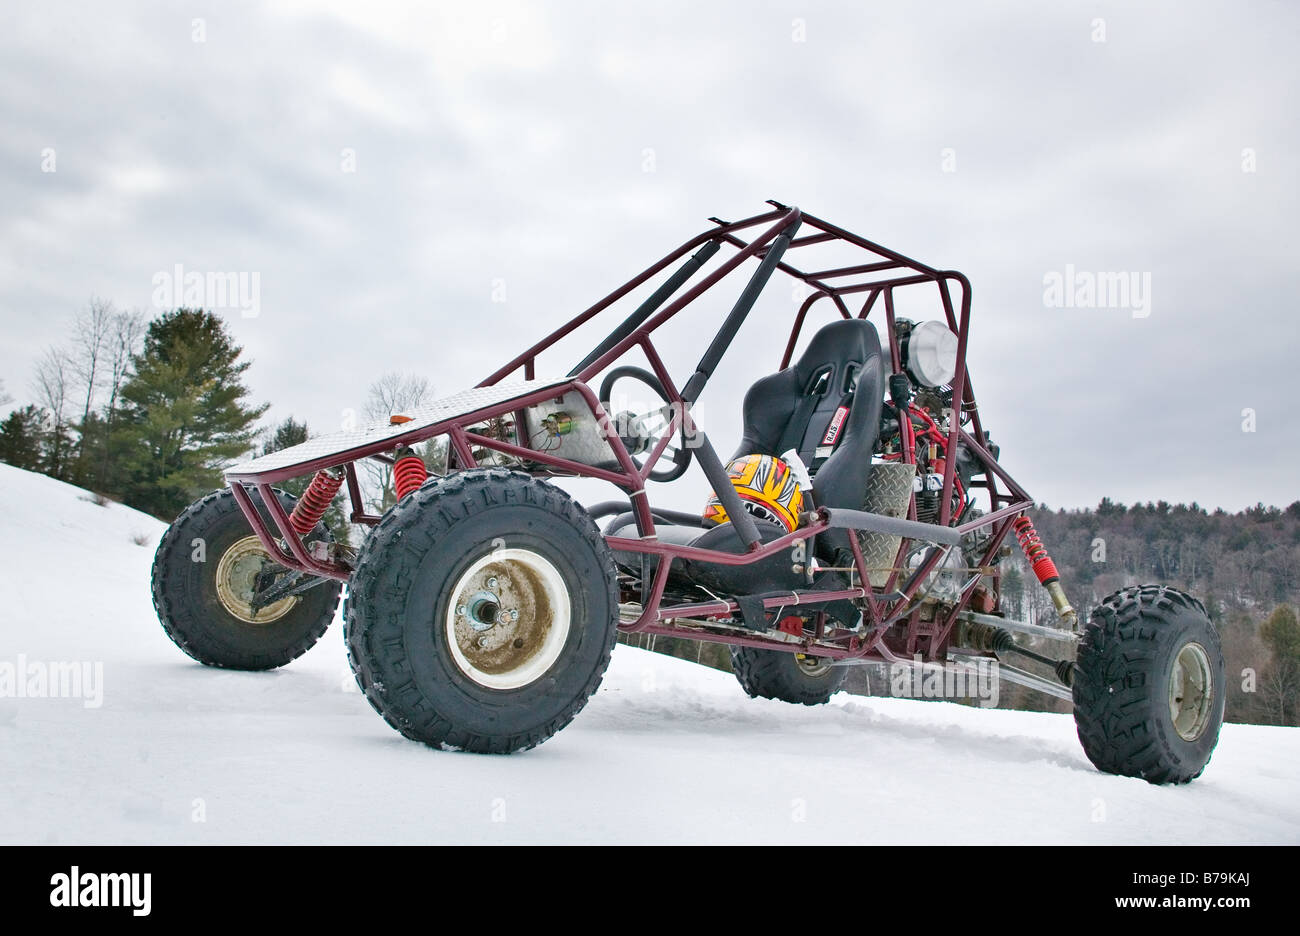 An off road buggy sitting in a snow covered field. - Stock Image